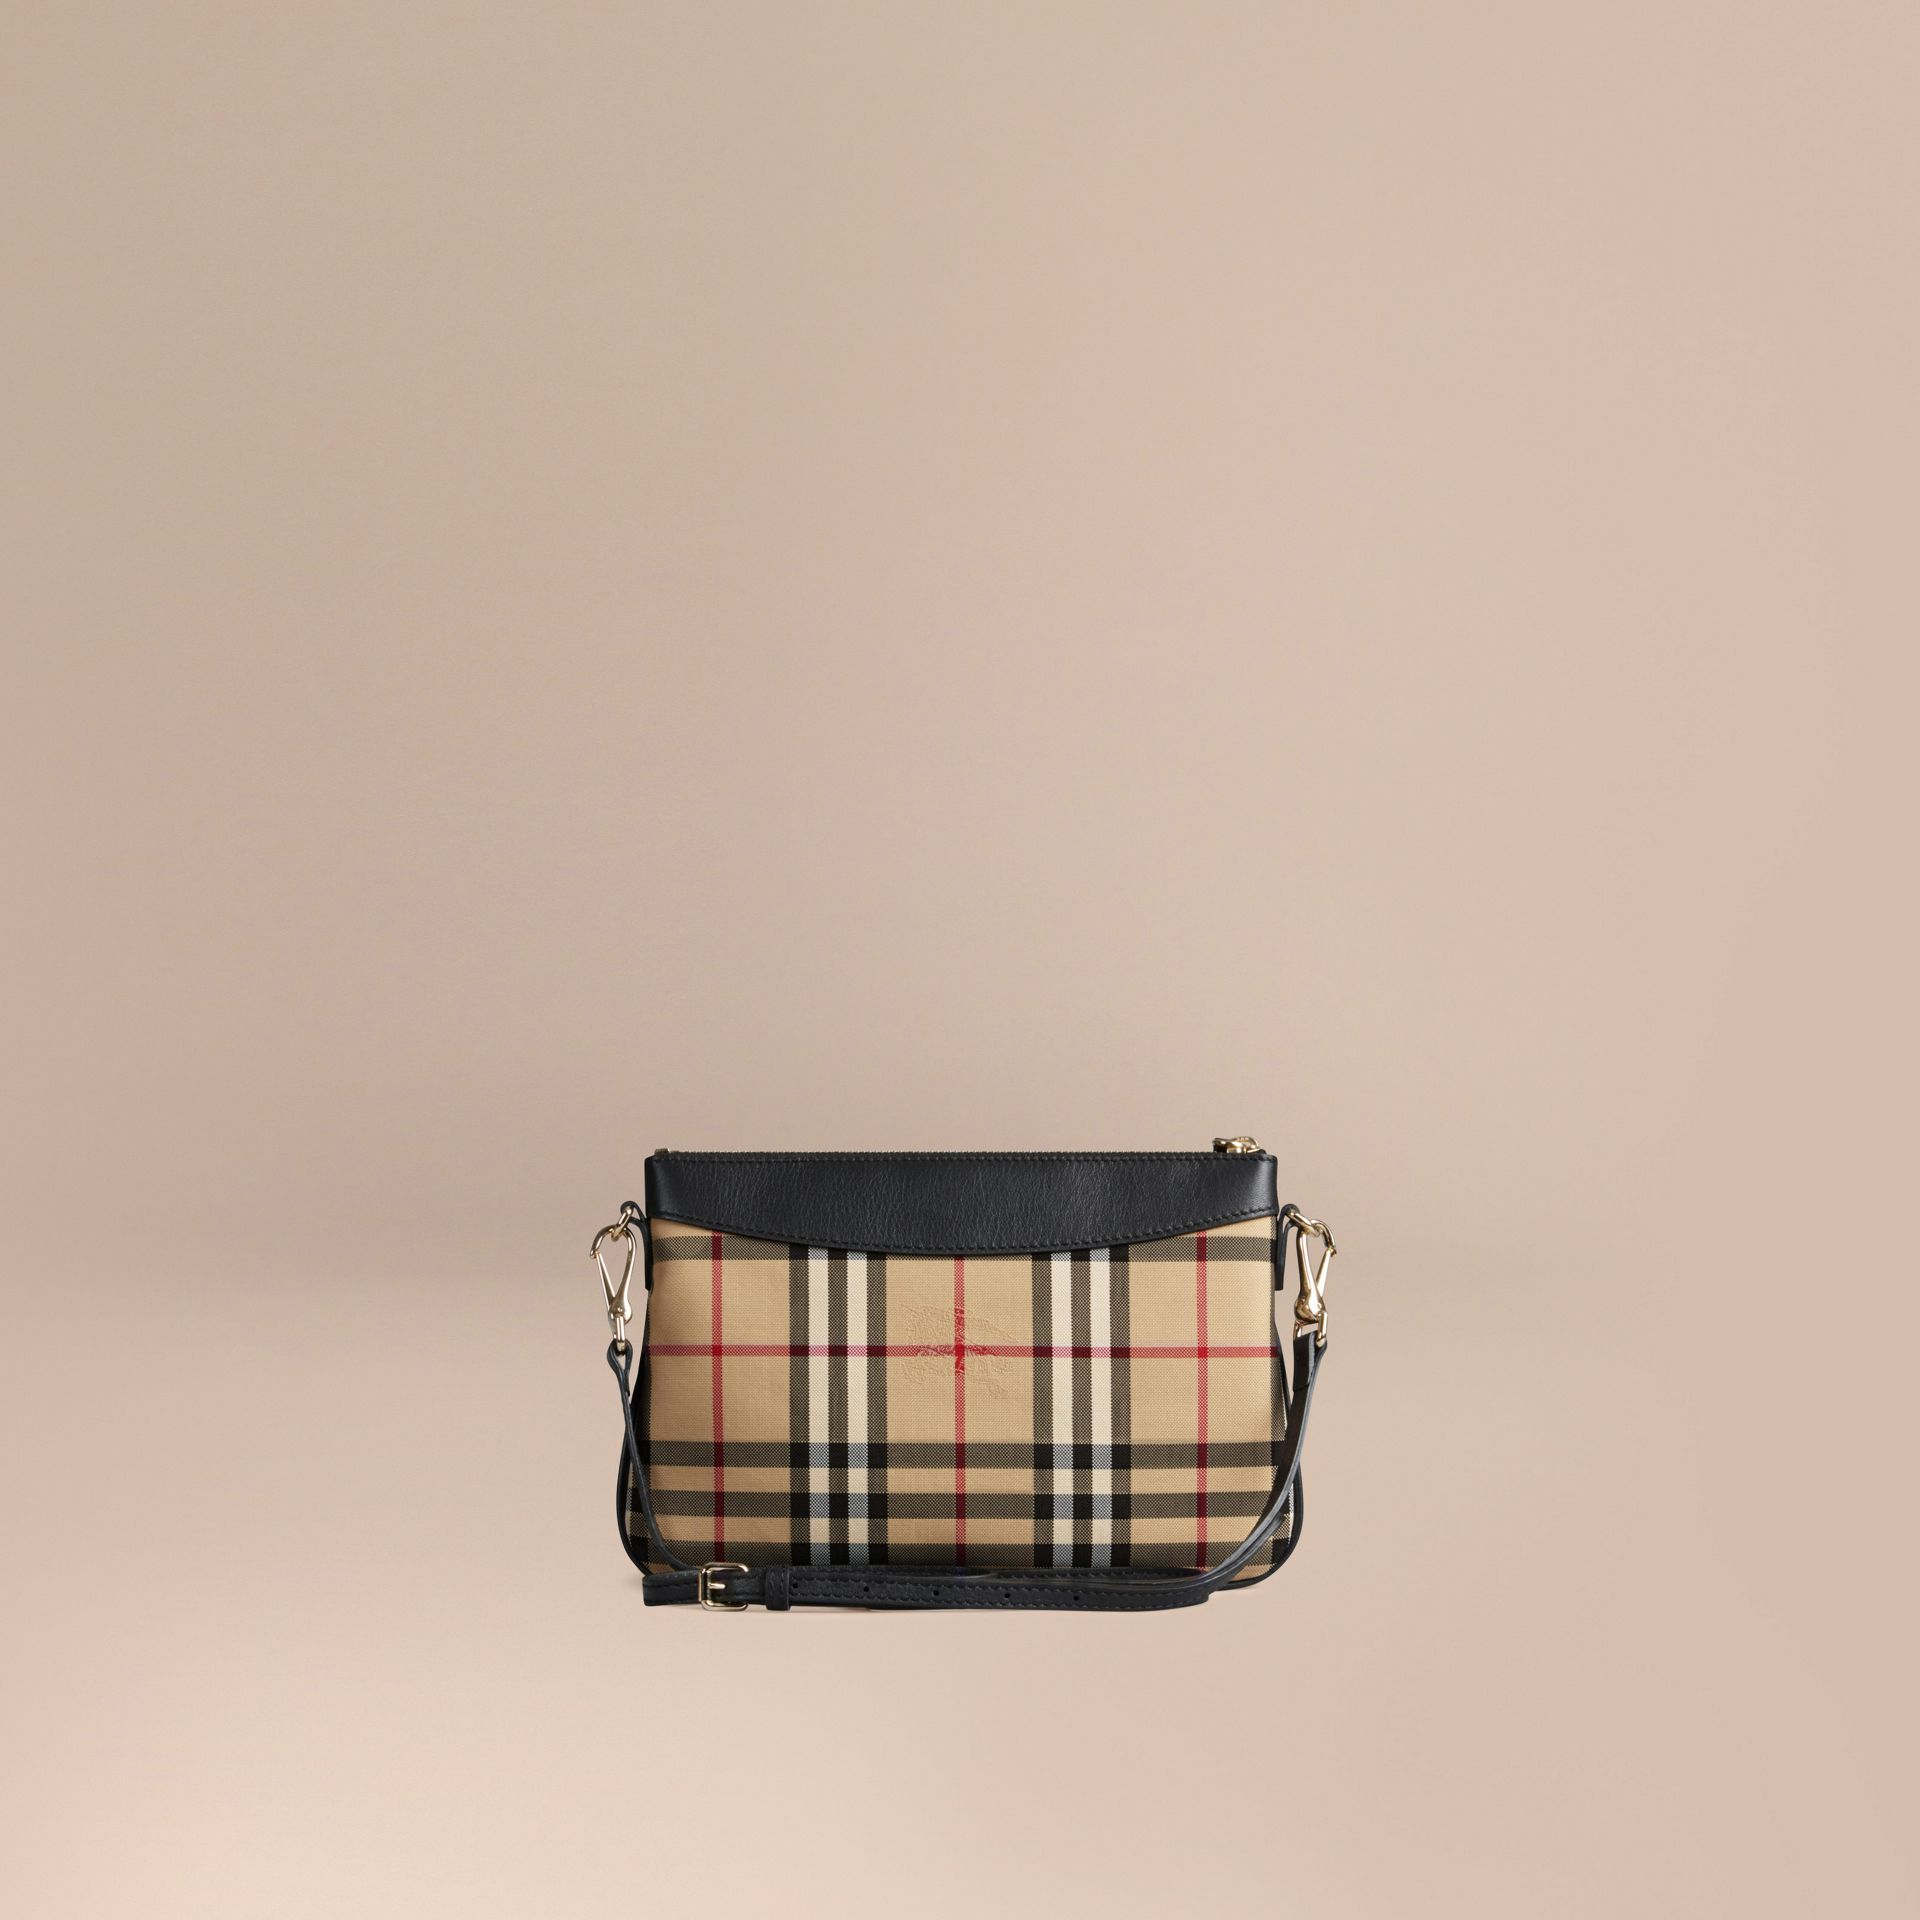 Horseferry Check and Leather Clutch Bag Black - gallery image 5